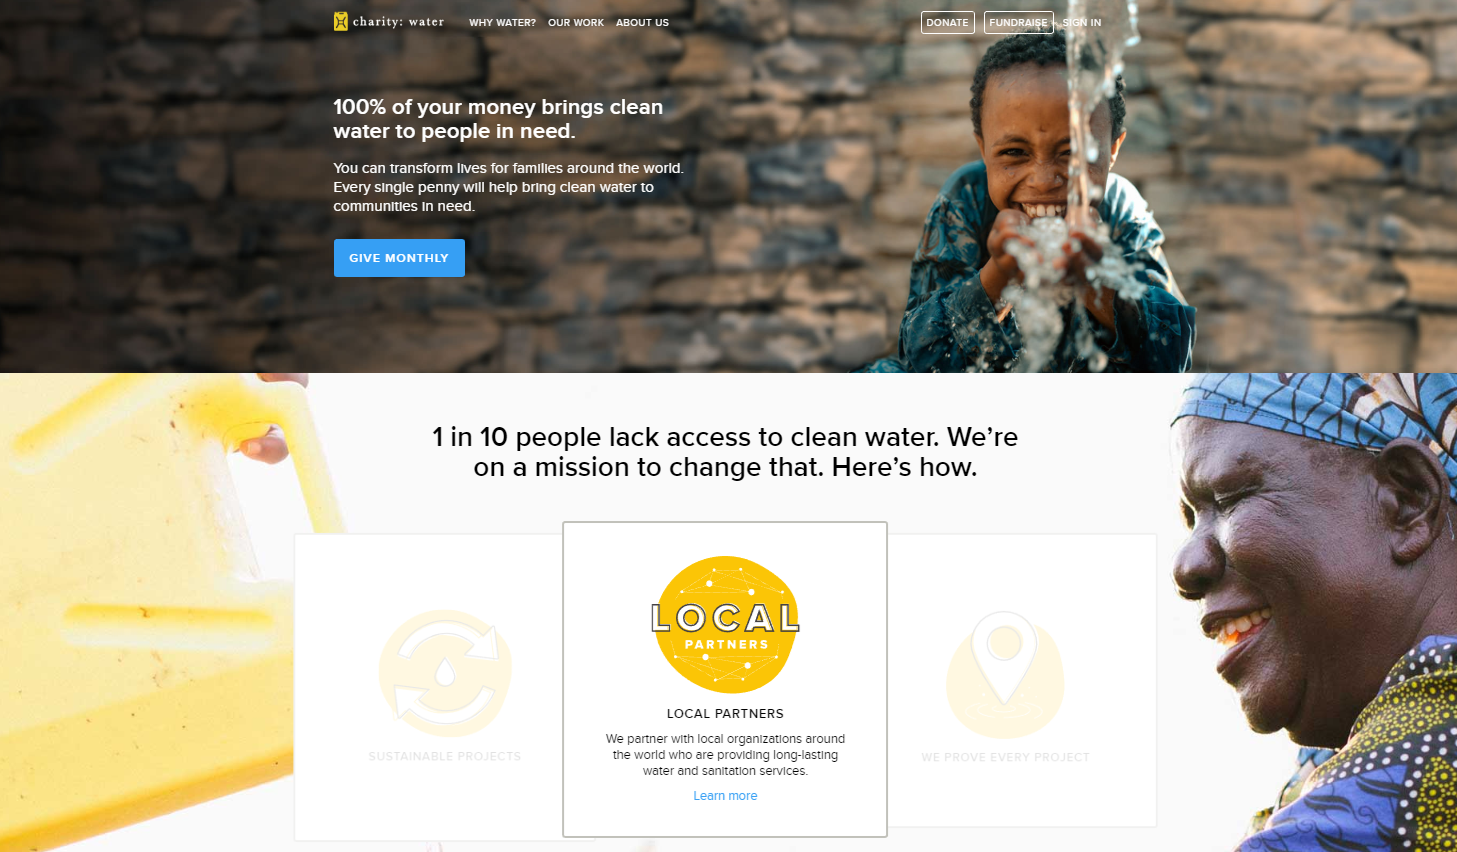 charity-water-home-page-design